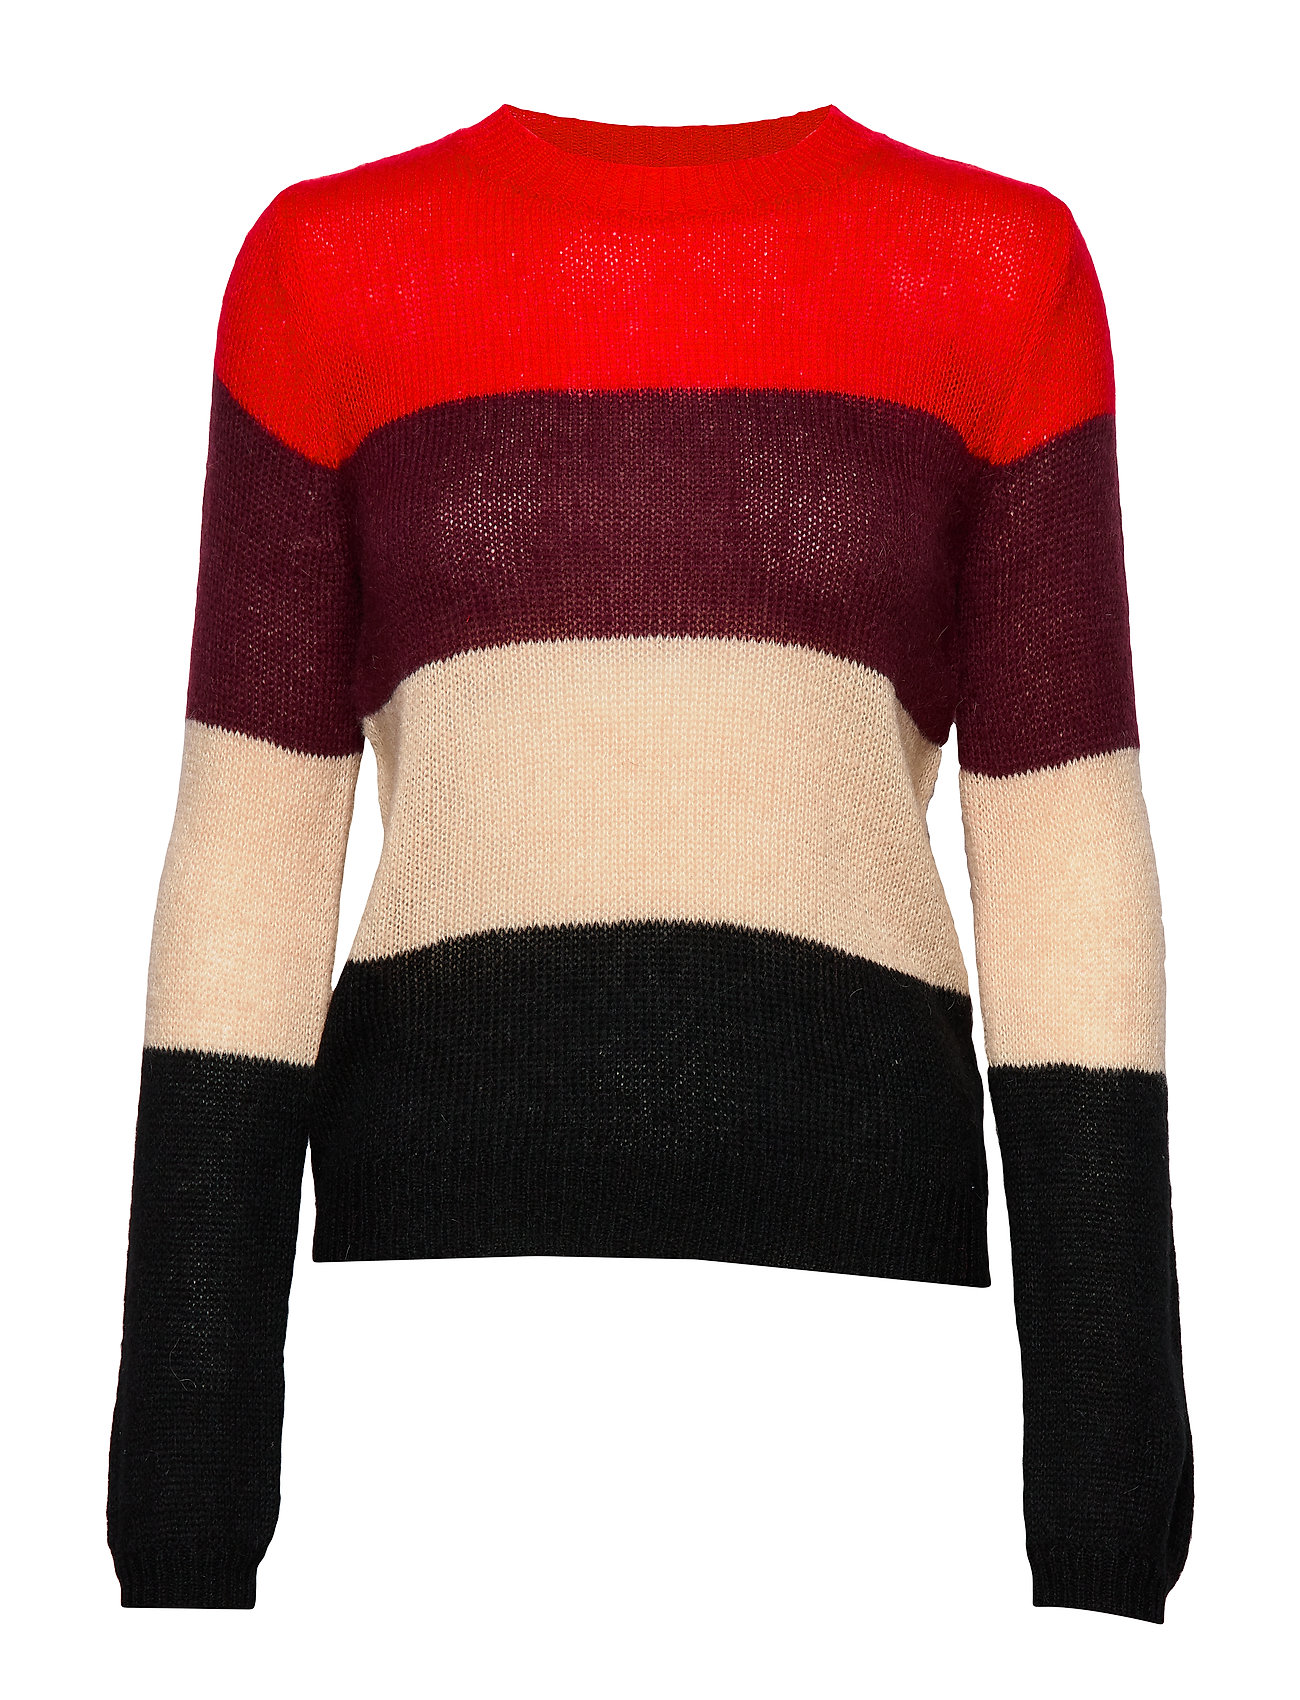 Taifun PULLOVER LONG-SLEEVE - LIPSTICK RED PATTERNED